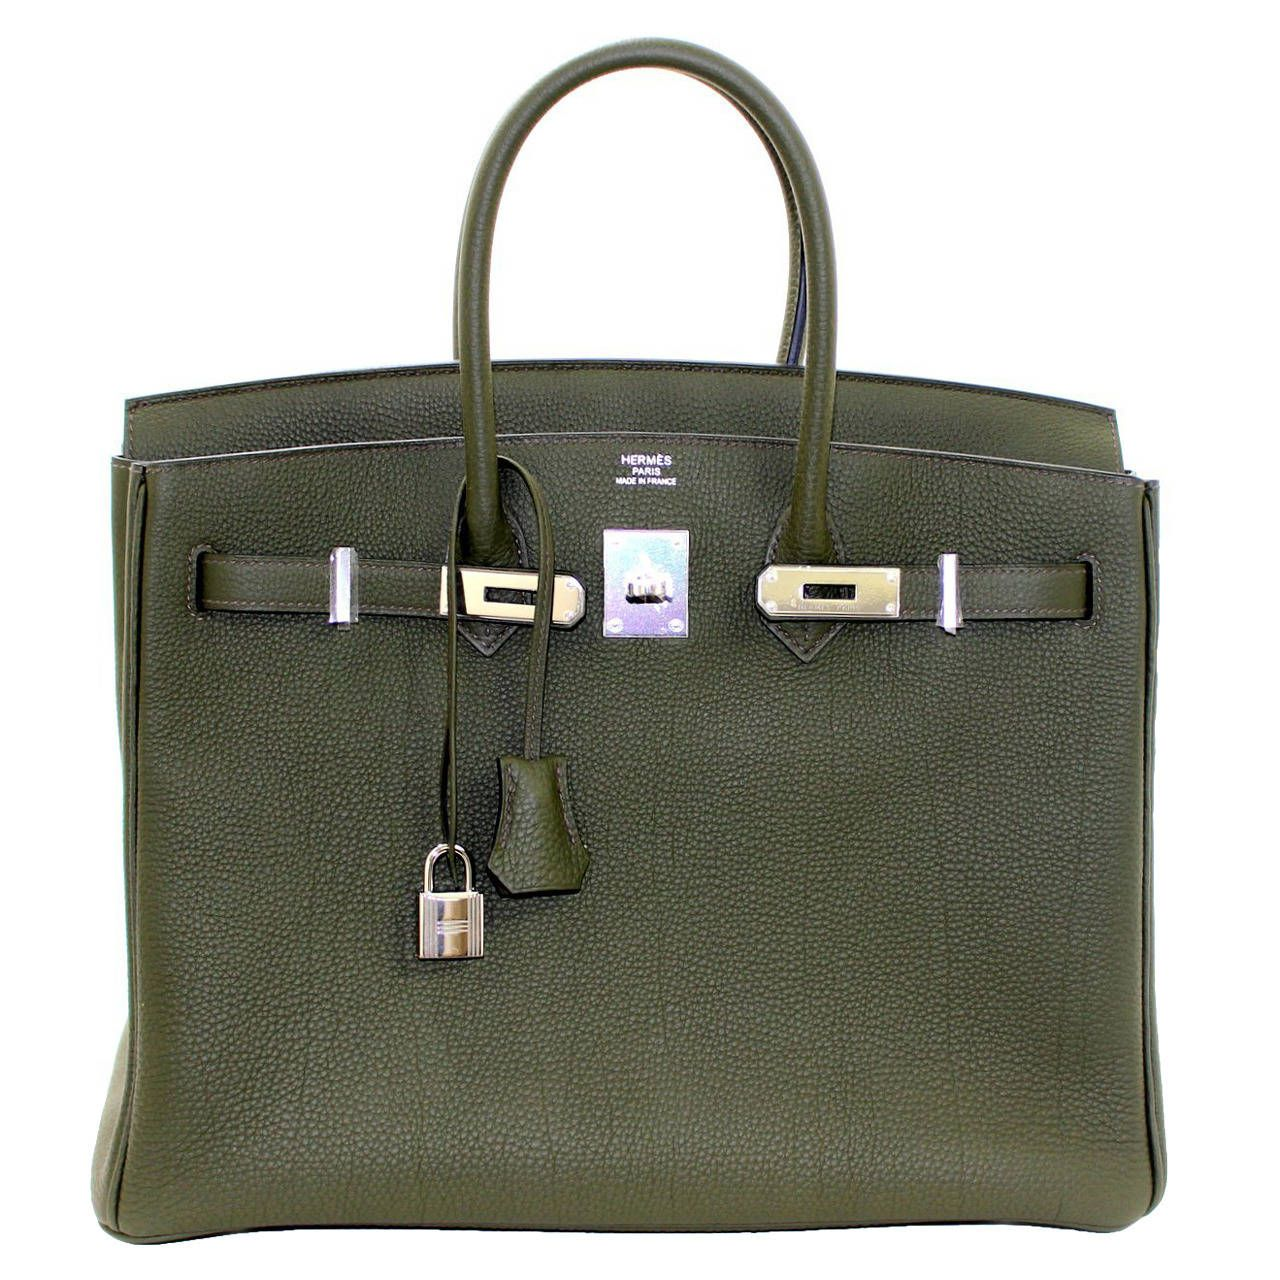 View This Item And Discover Similar Top Handle Bags For At Pristine Fresh Condition Plastic On Hardware Hermès Birkin Bag In Vert Olive Togo